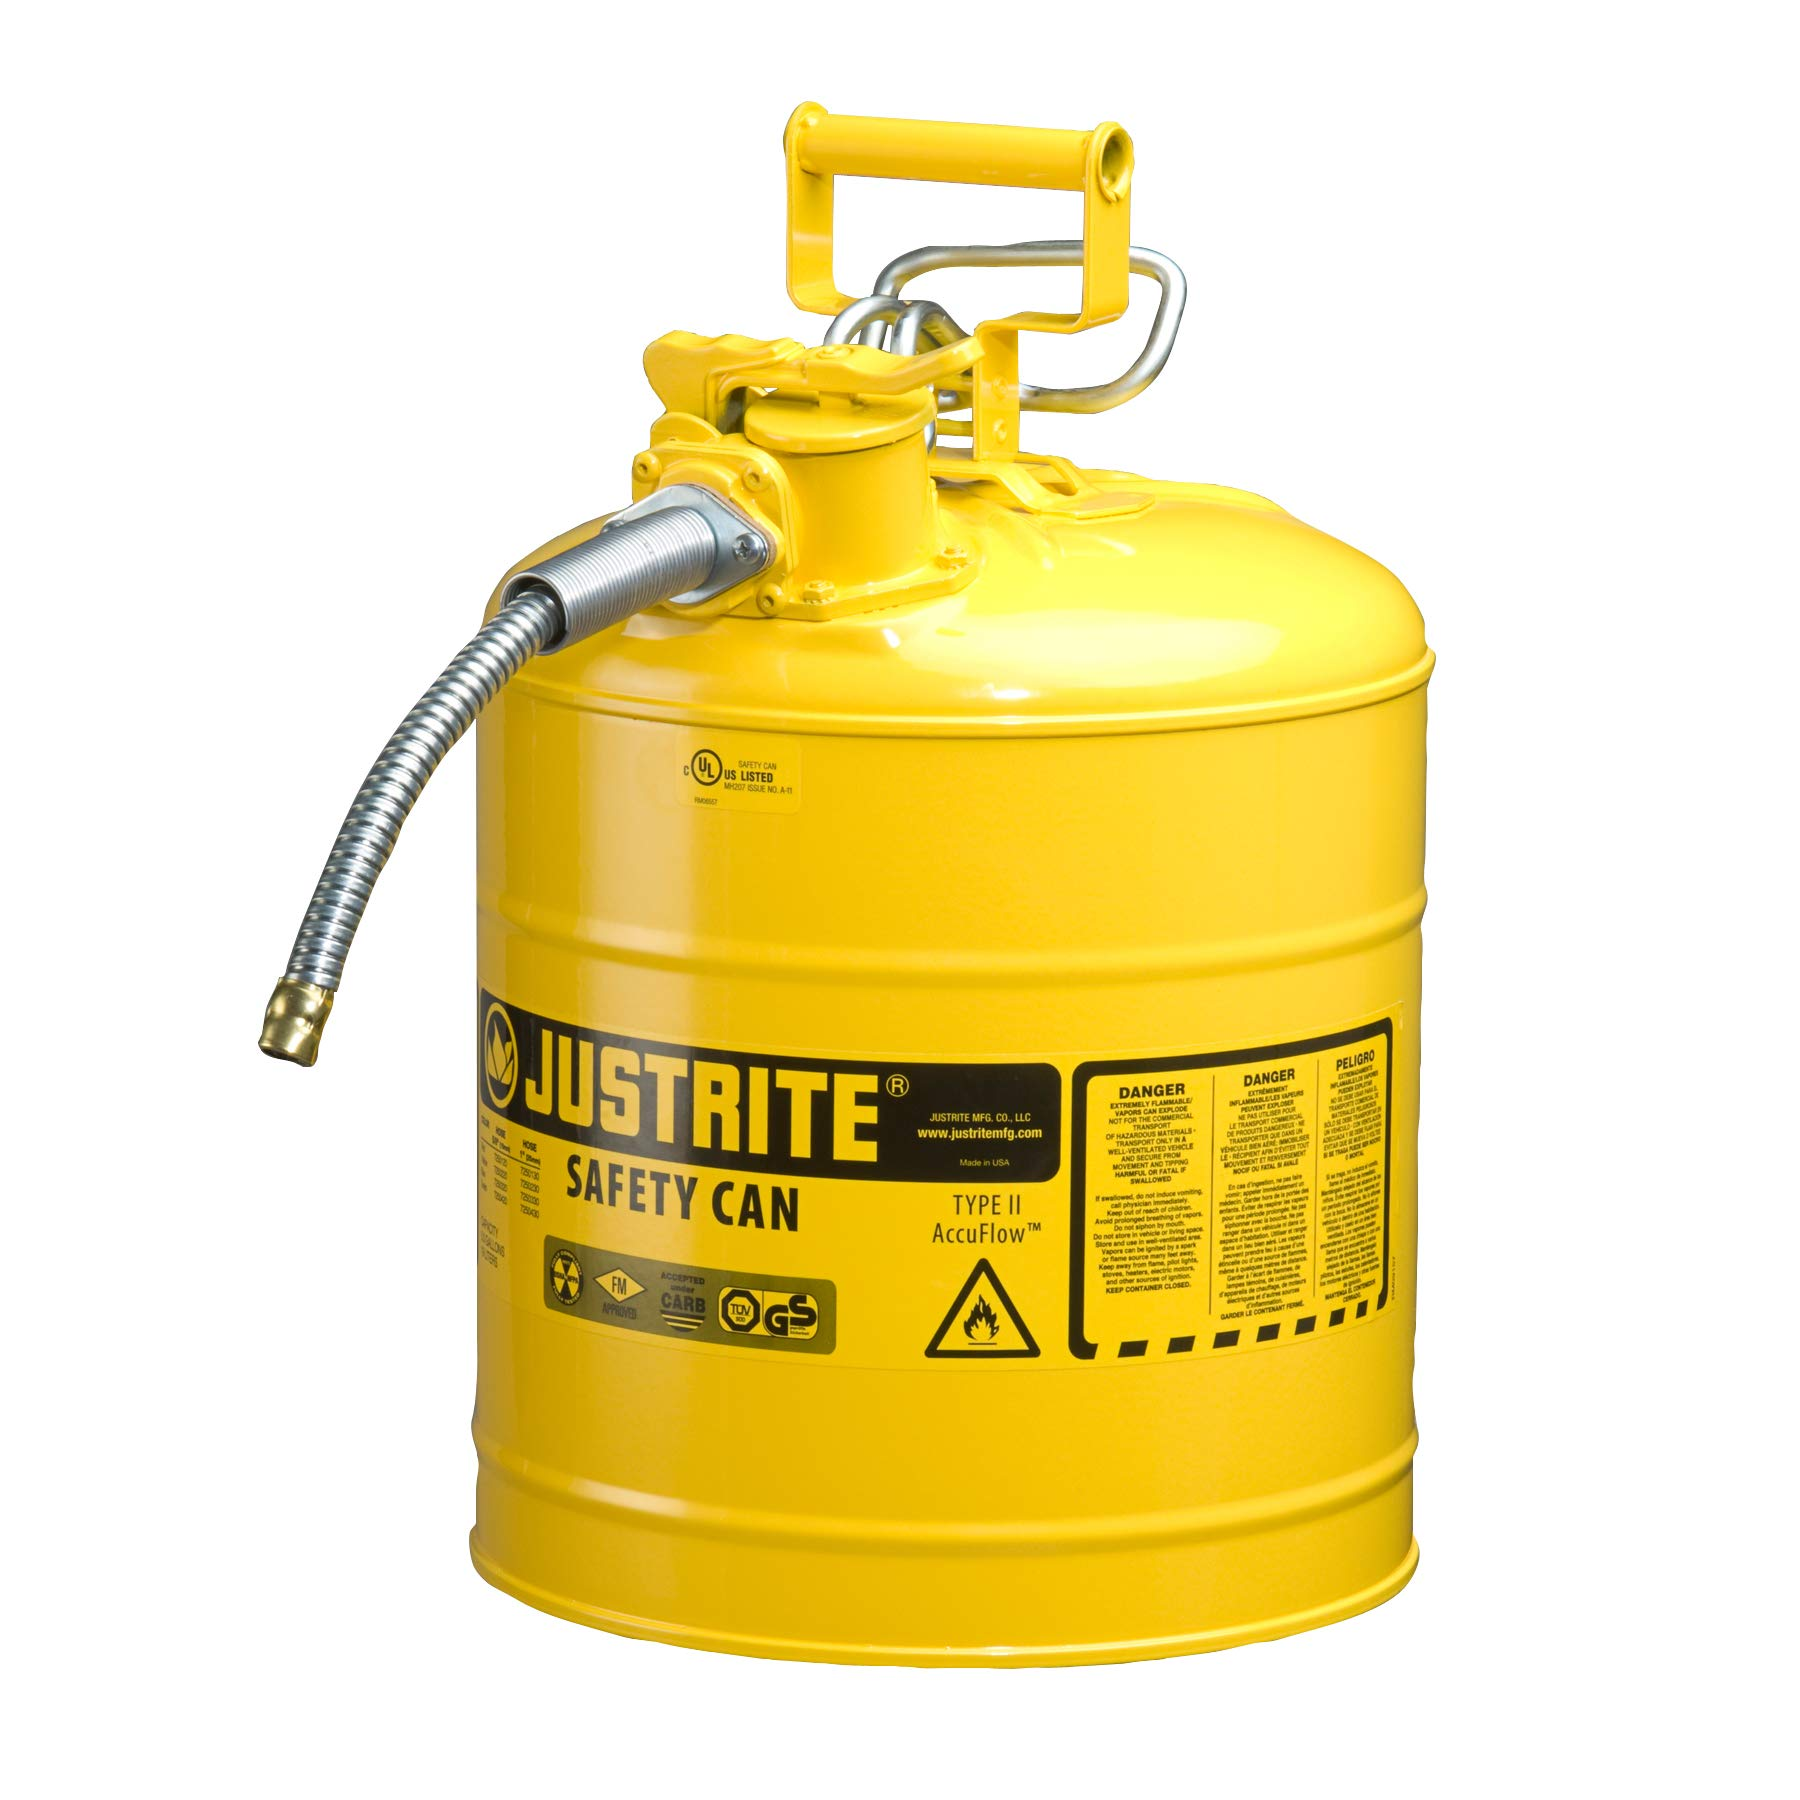 Type Ii Safety Can, Yellow, 17-1/2 in. H by Justrite